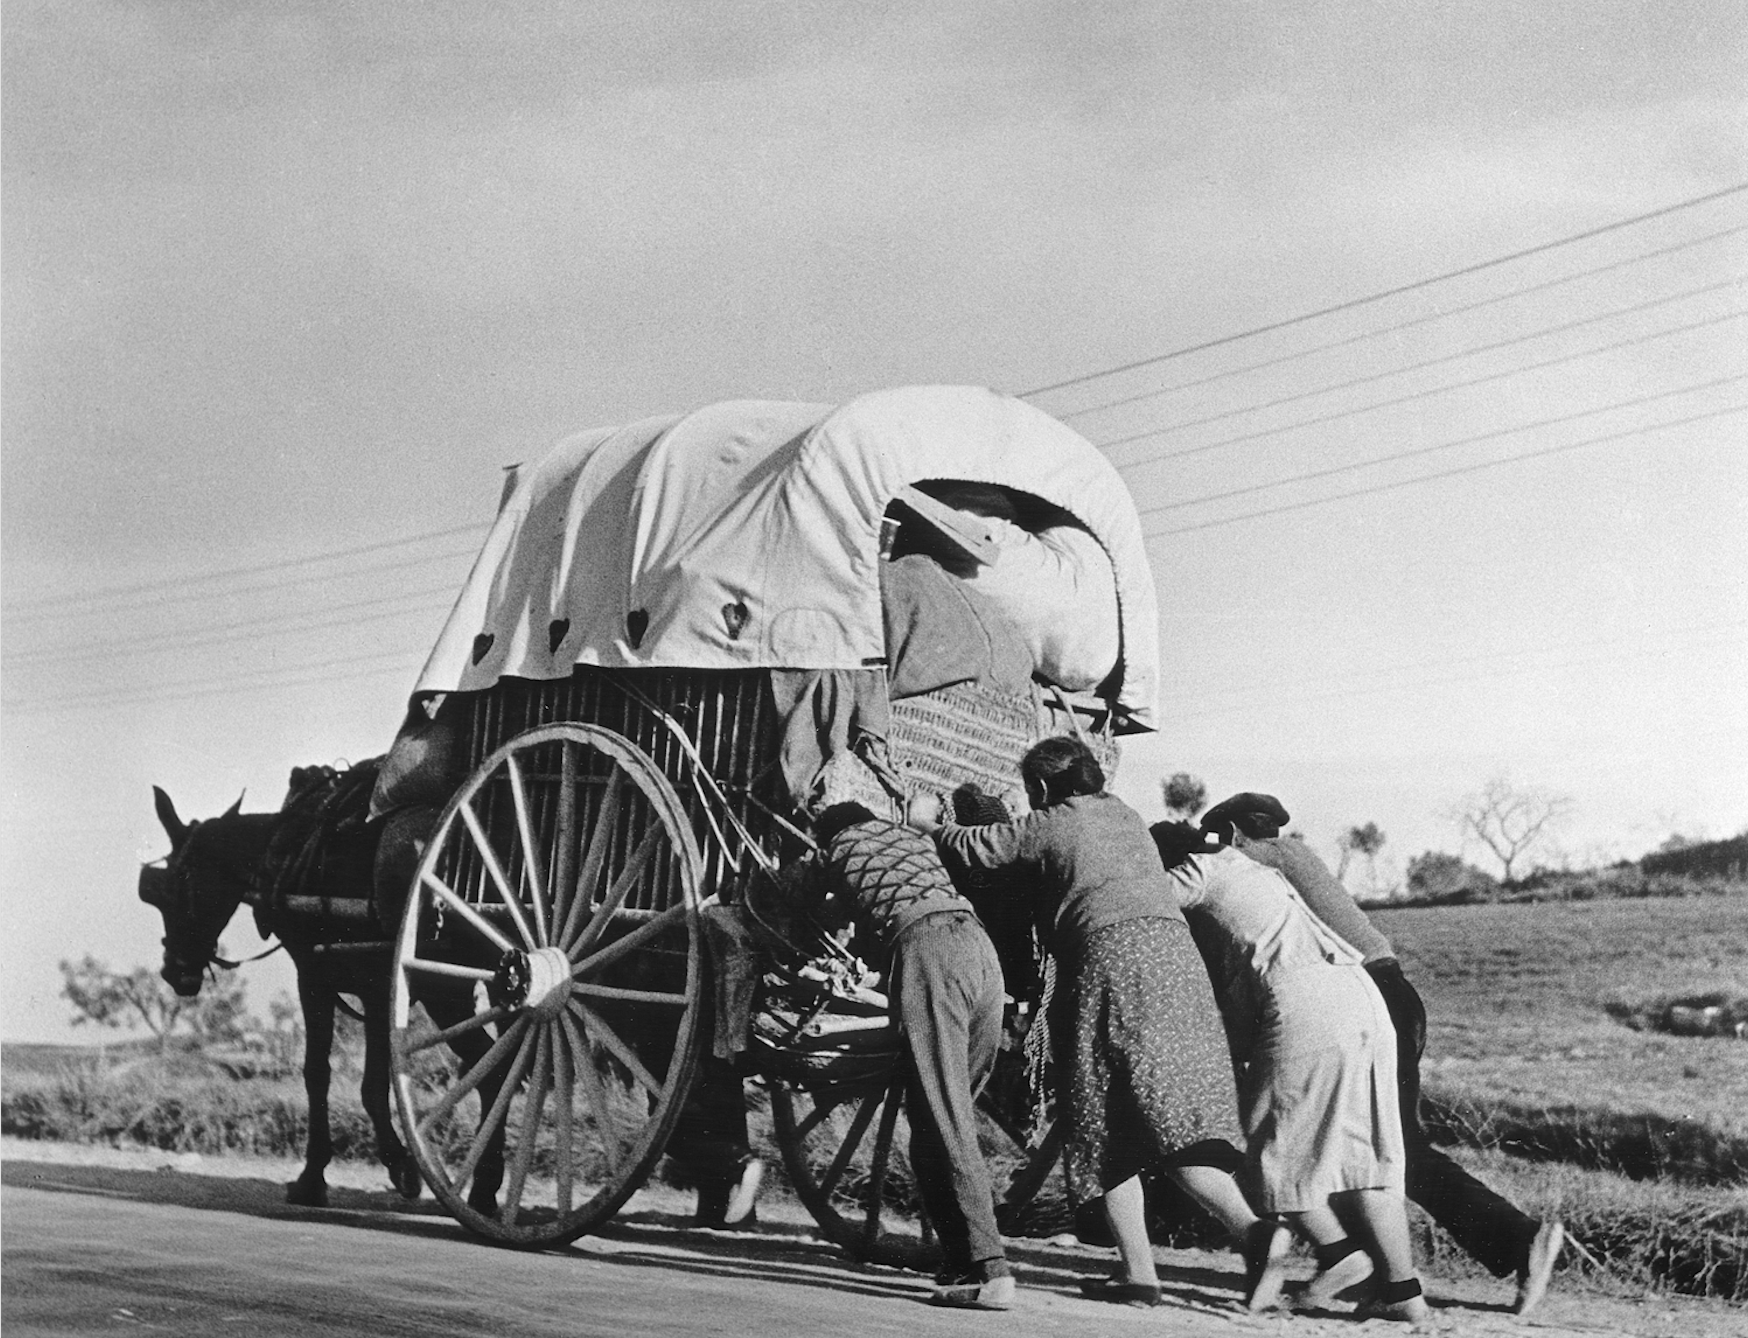 Robert Capa. Civilians from the threatened town of Tarragona pushing their wagon on their way to seek refuge in Barcelona, before that city itself had to be evacuated, January 15, 1939. © International Center of Photography/Magnum Photos.